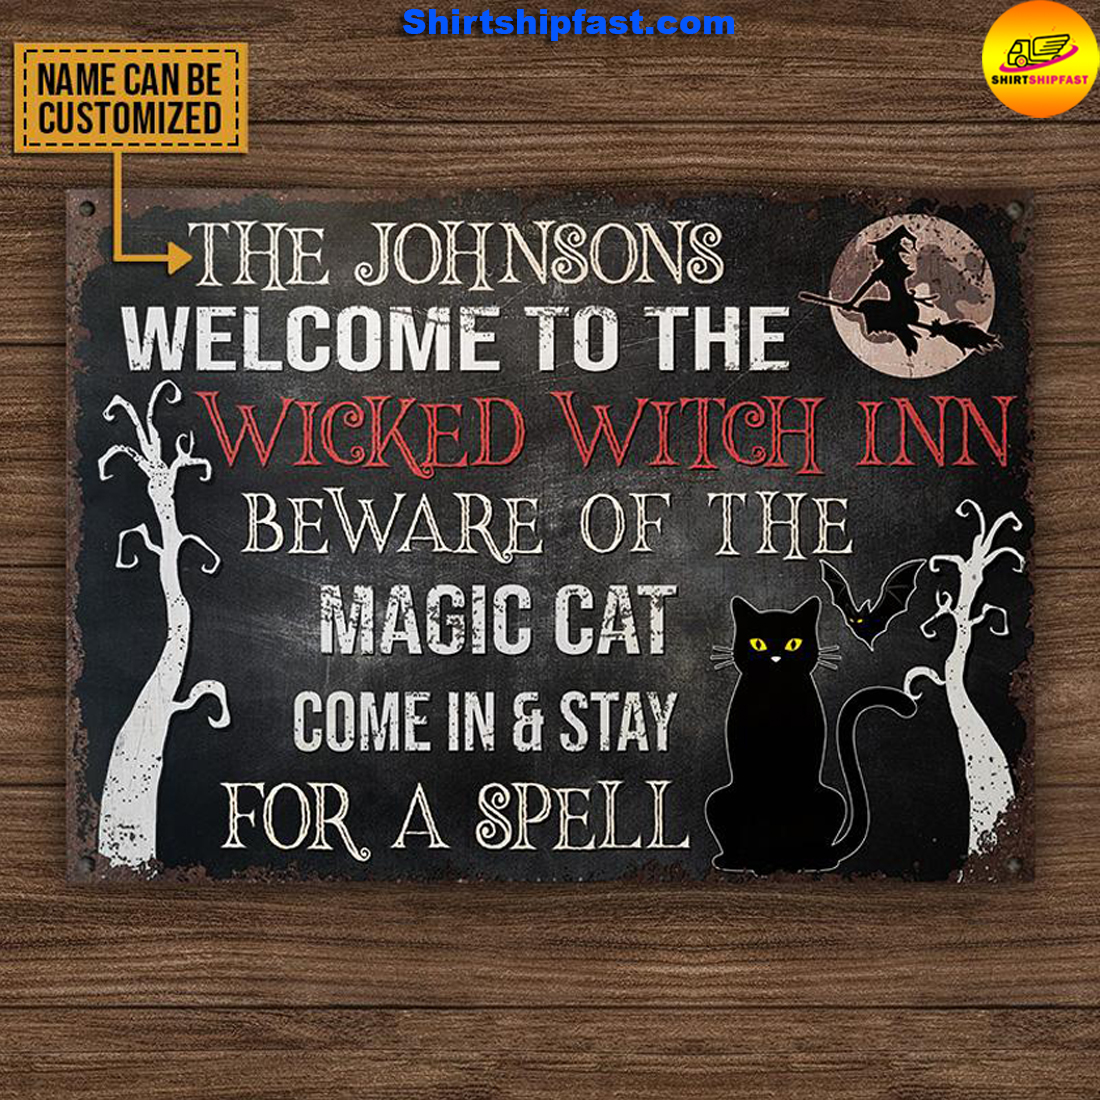 Welcome to the wicked witch inn beware of the magic cat custom name metal sign